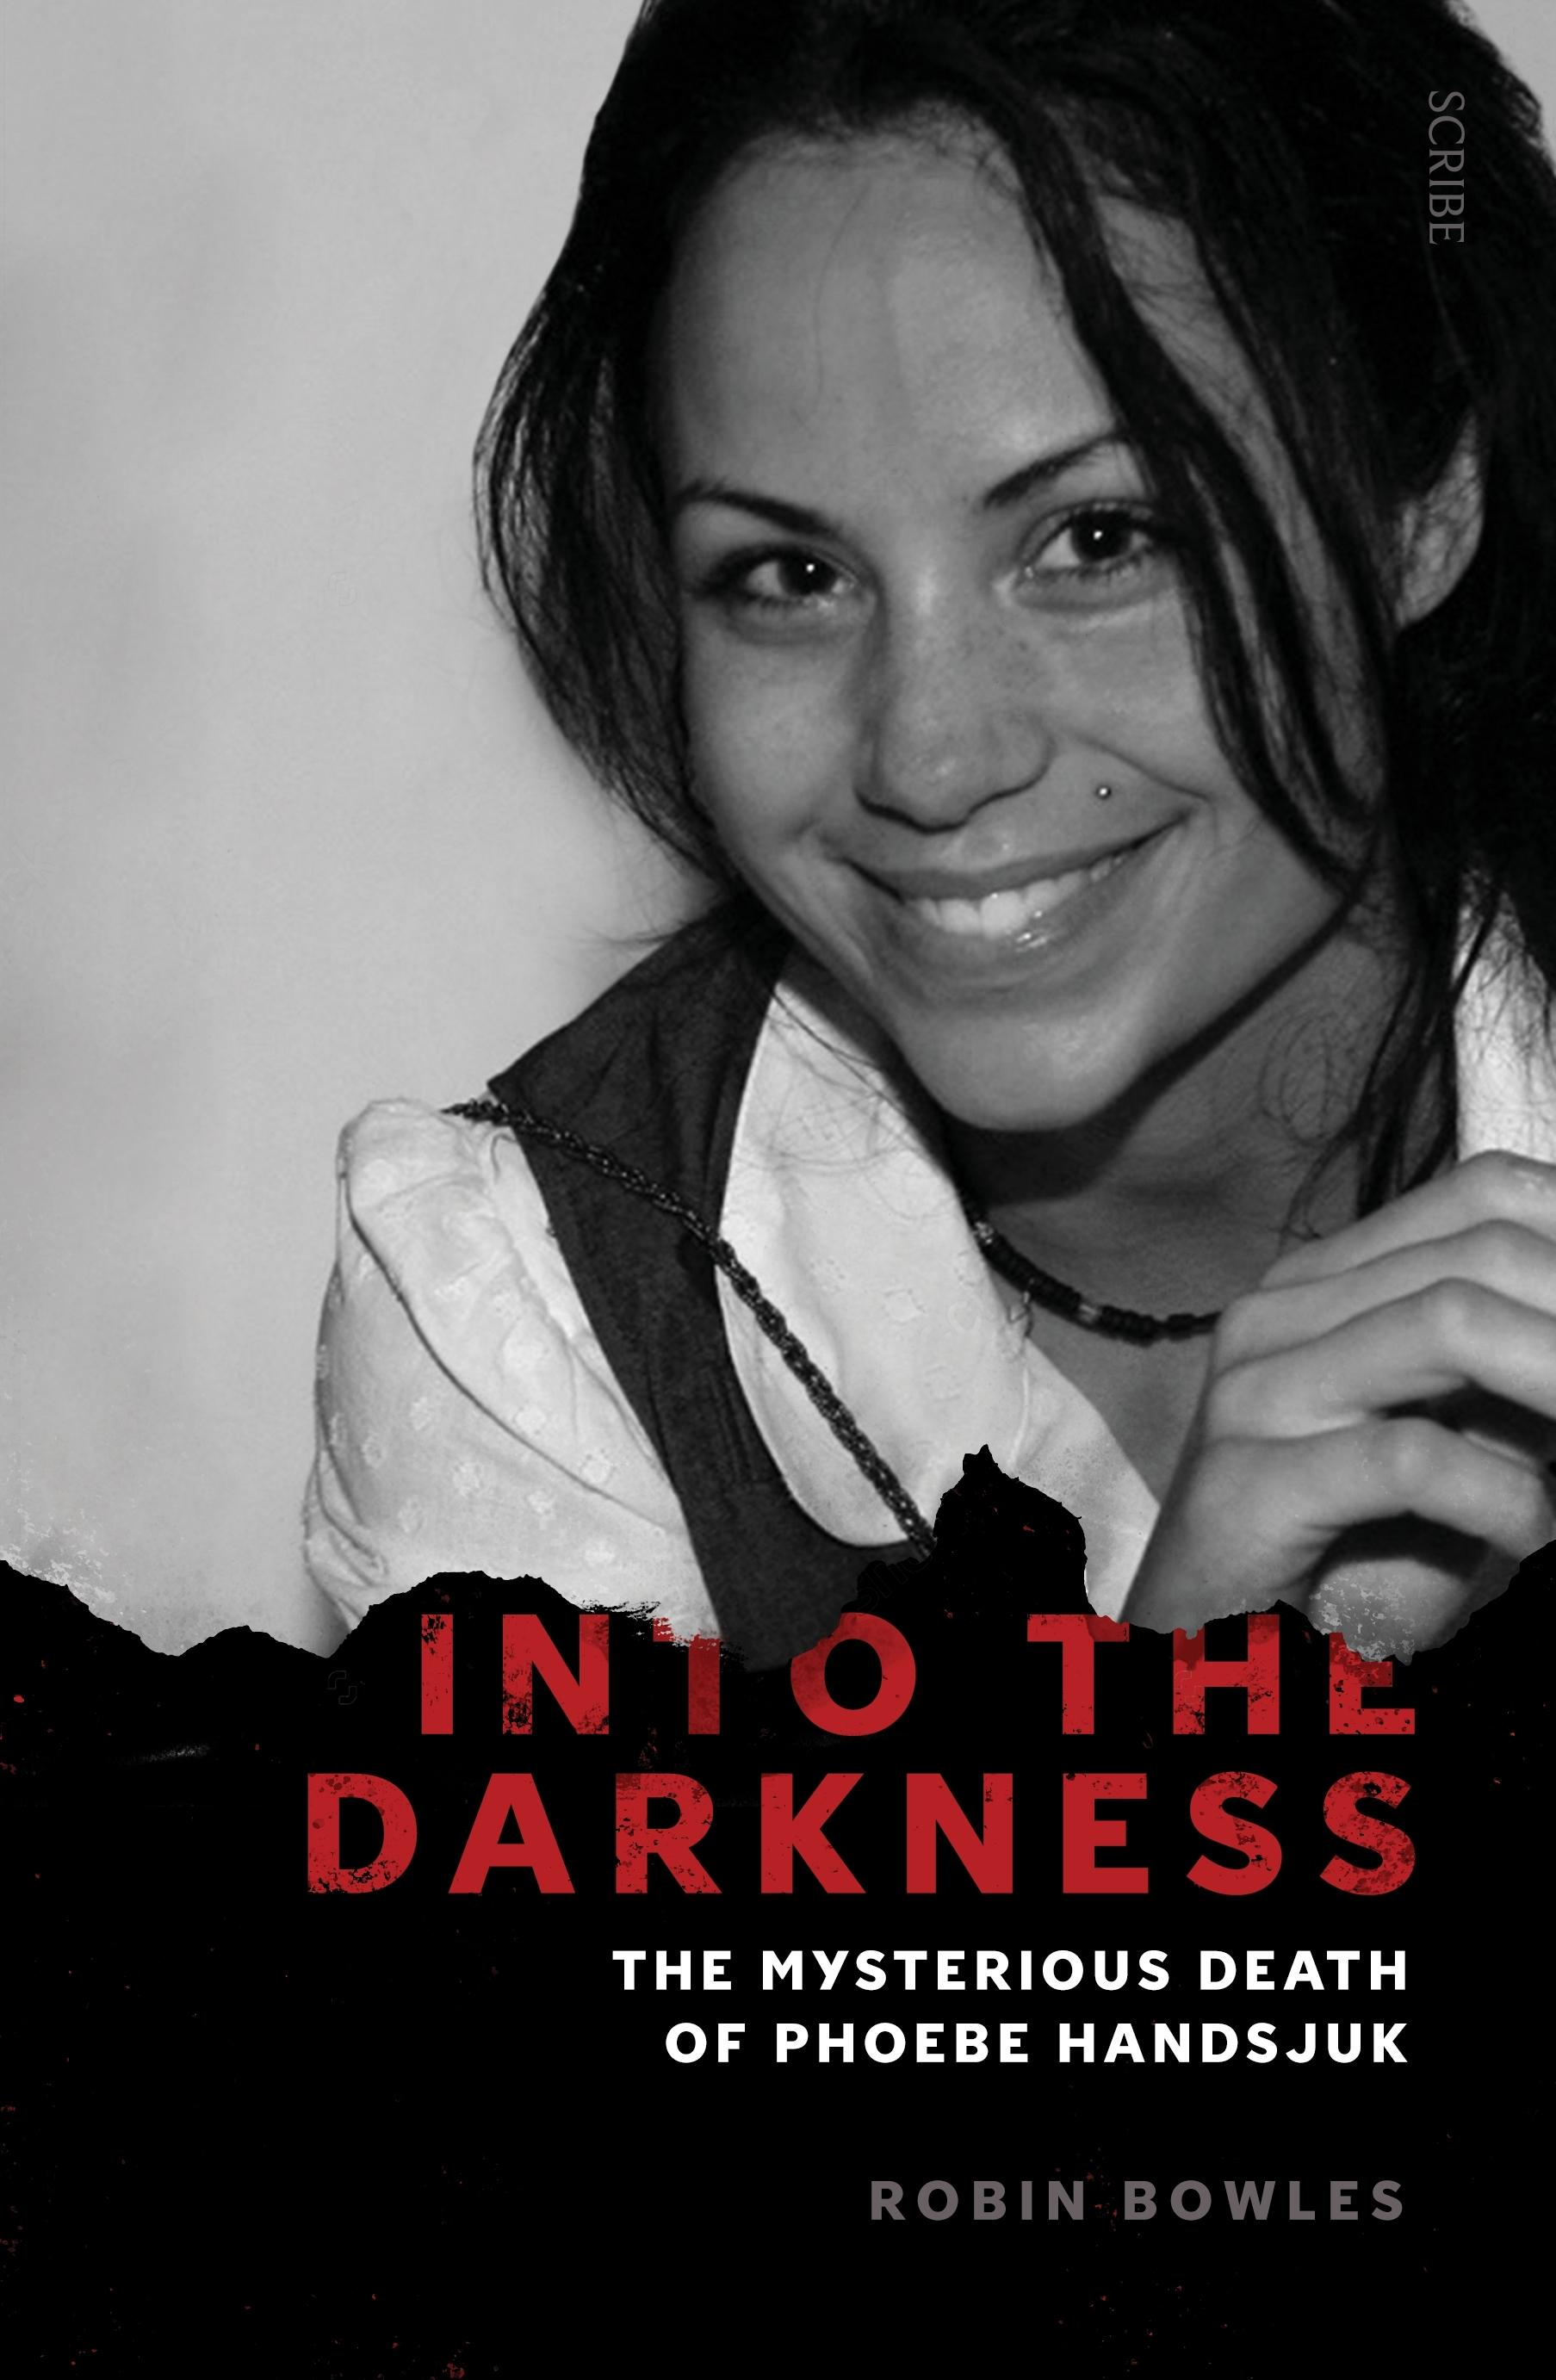 Into the Darkness: the mysterious death ofPhoebeHandsjuk